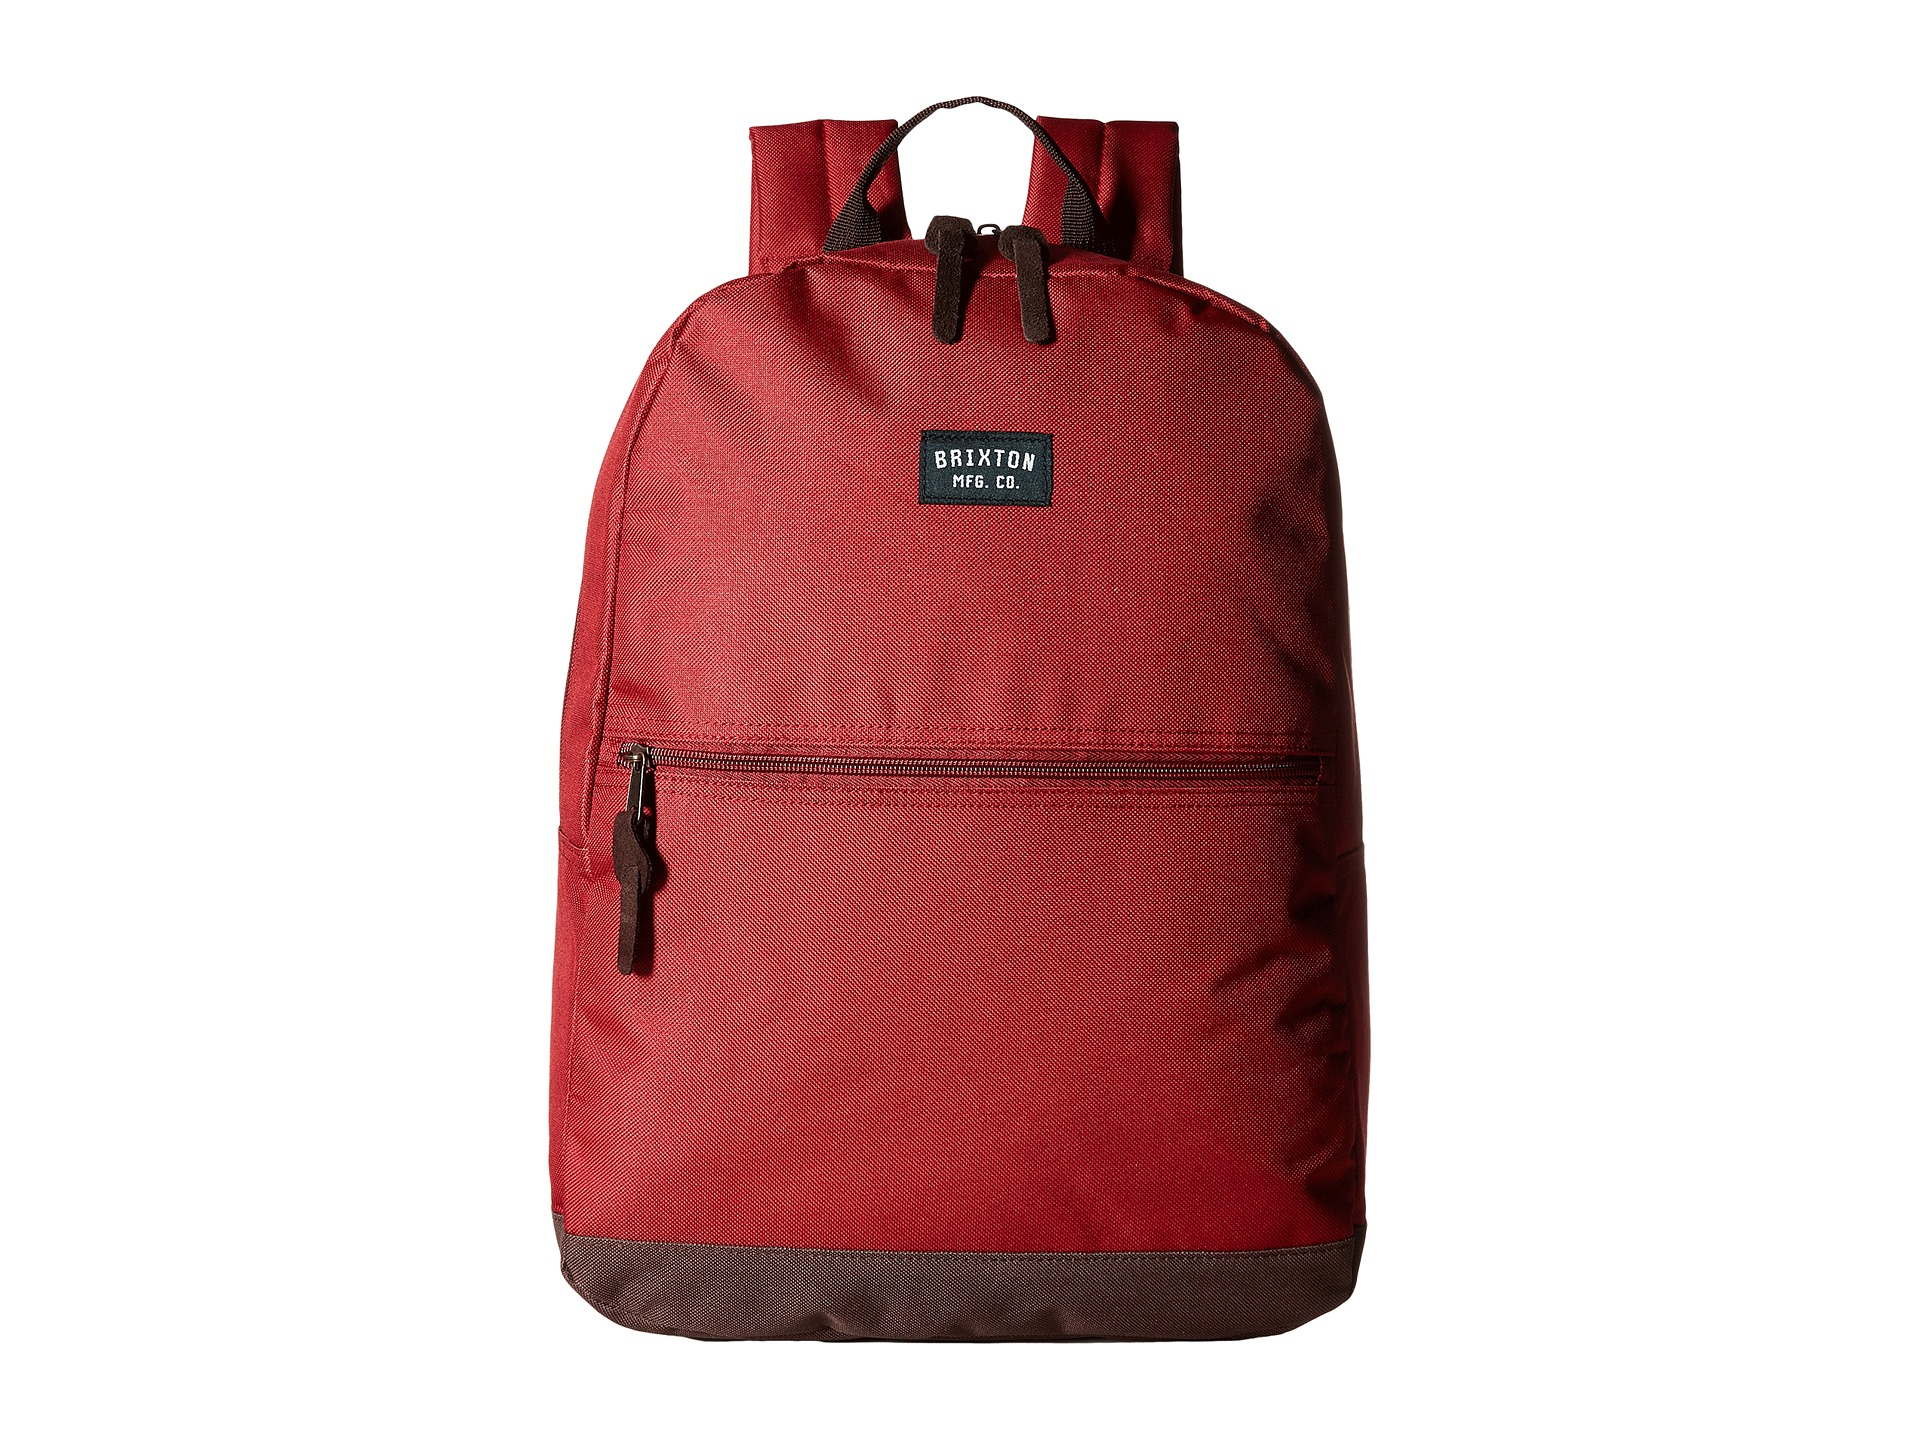 backpack and lockers Backpack and tablet lockers for short-term use with electronic charging power  and keyless storage lock access to secure personal belongings, units ensure.